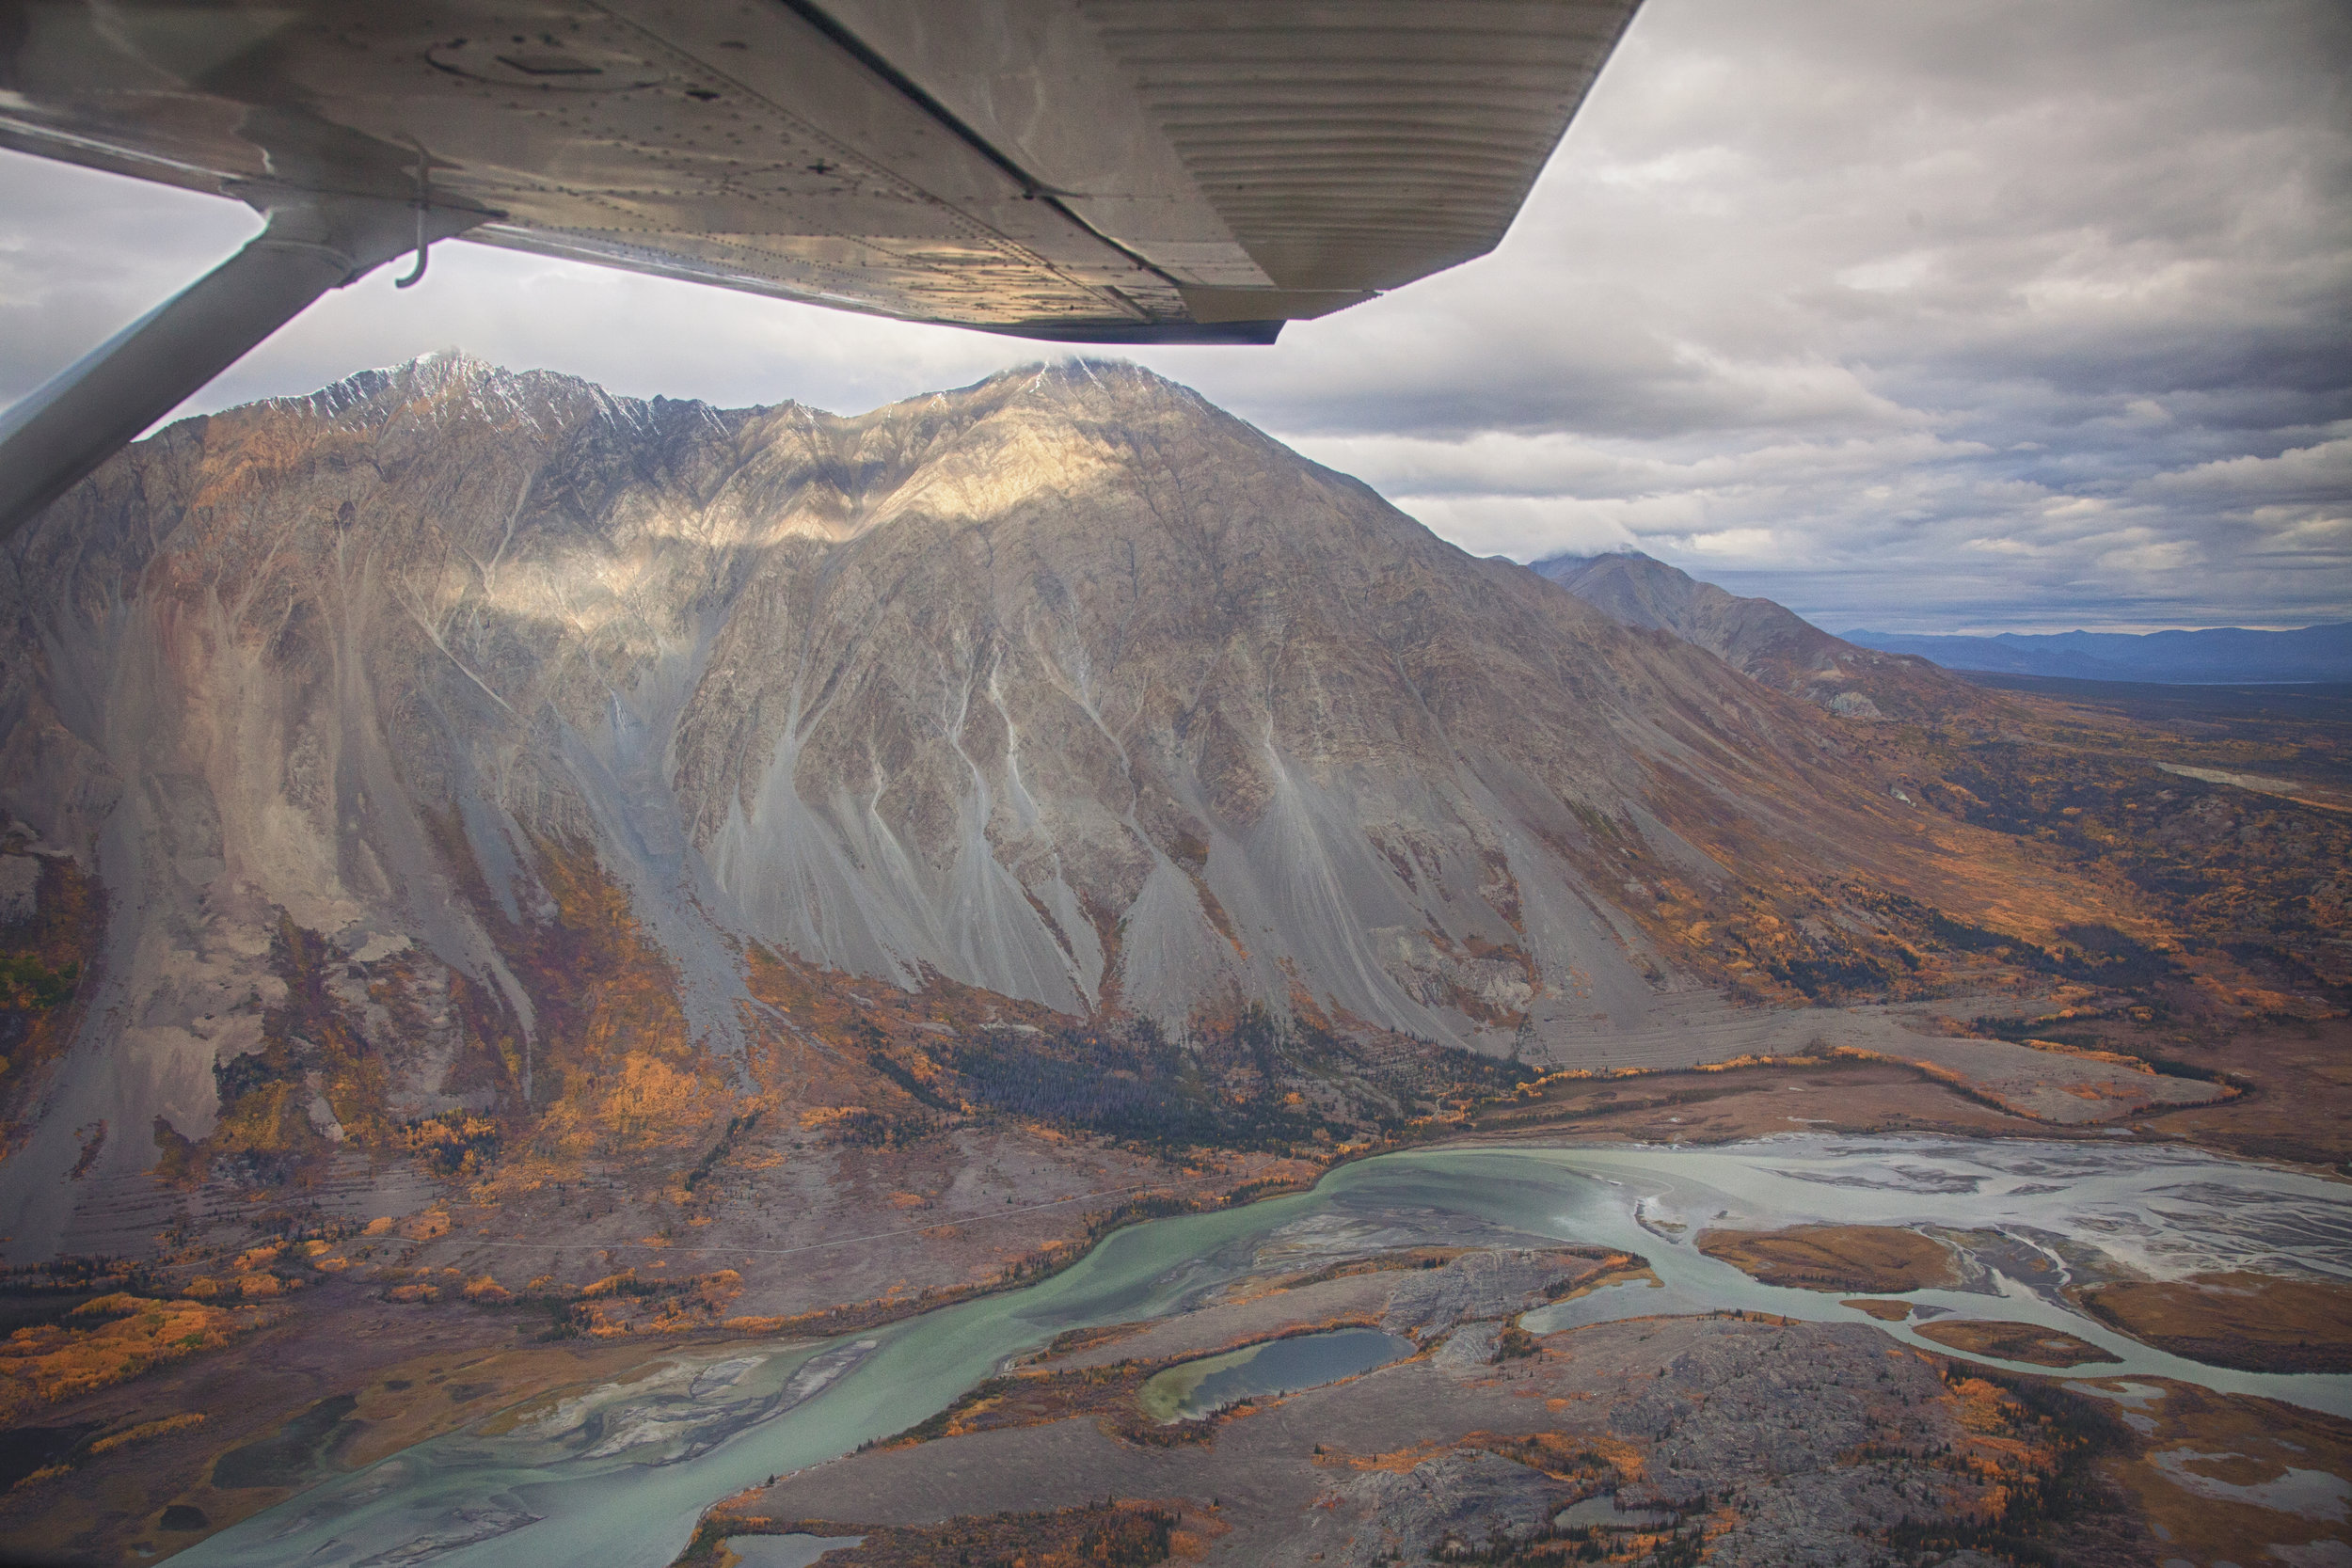 Flight over Kluane - Across the Blue Planet